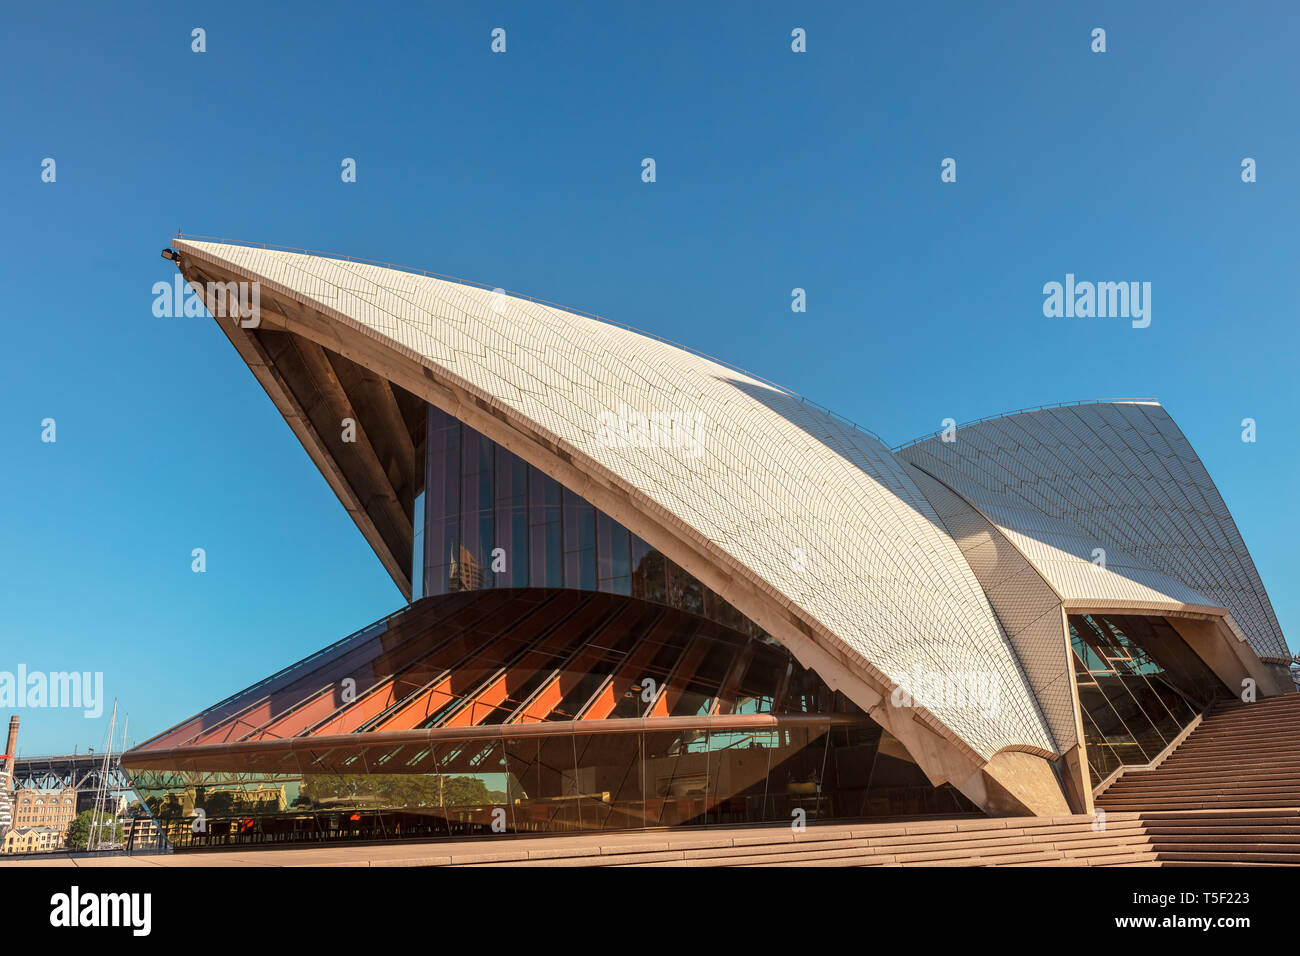 The Sydney Opera House at Sydney Harbour is one of the 20th century's most famous and distinctive buildings. - Stock Image